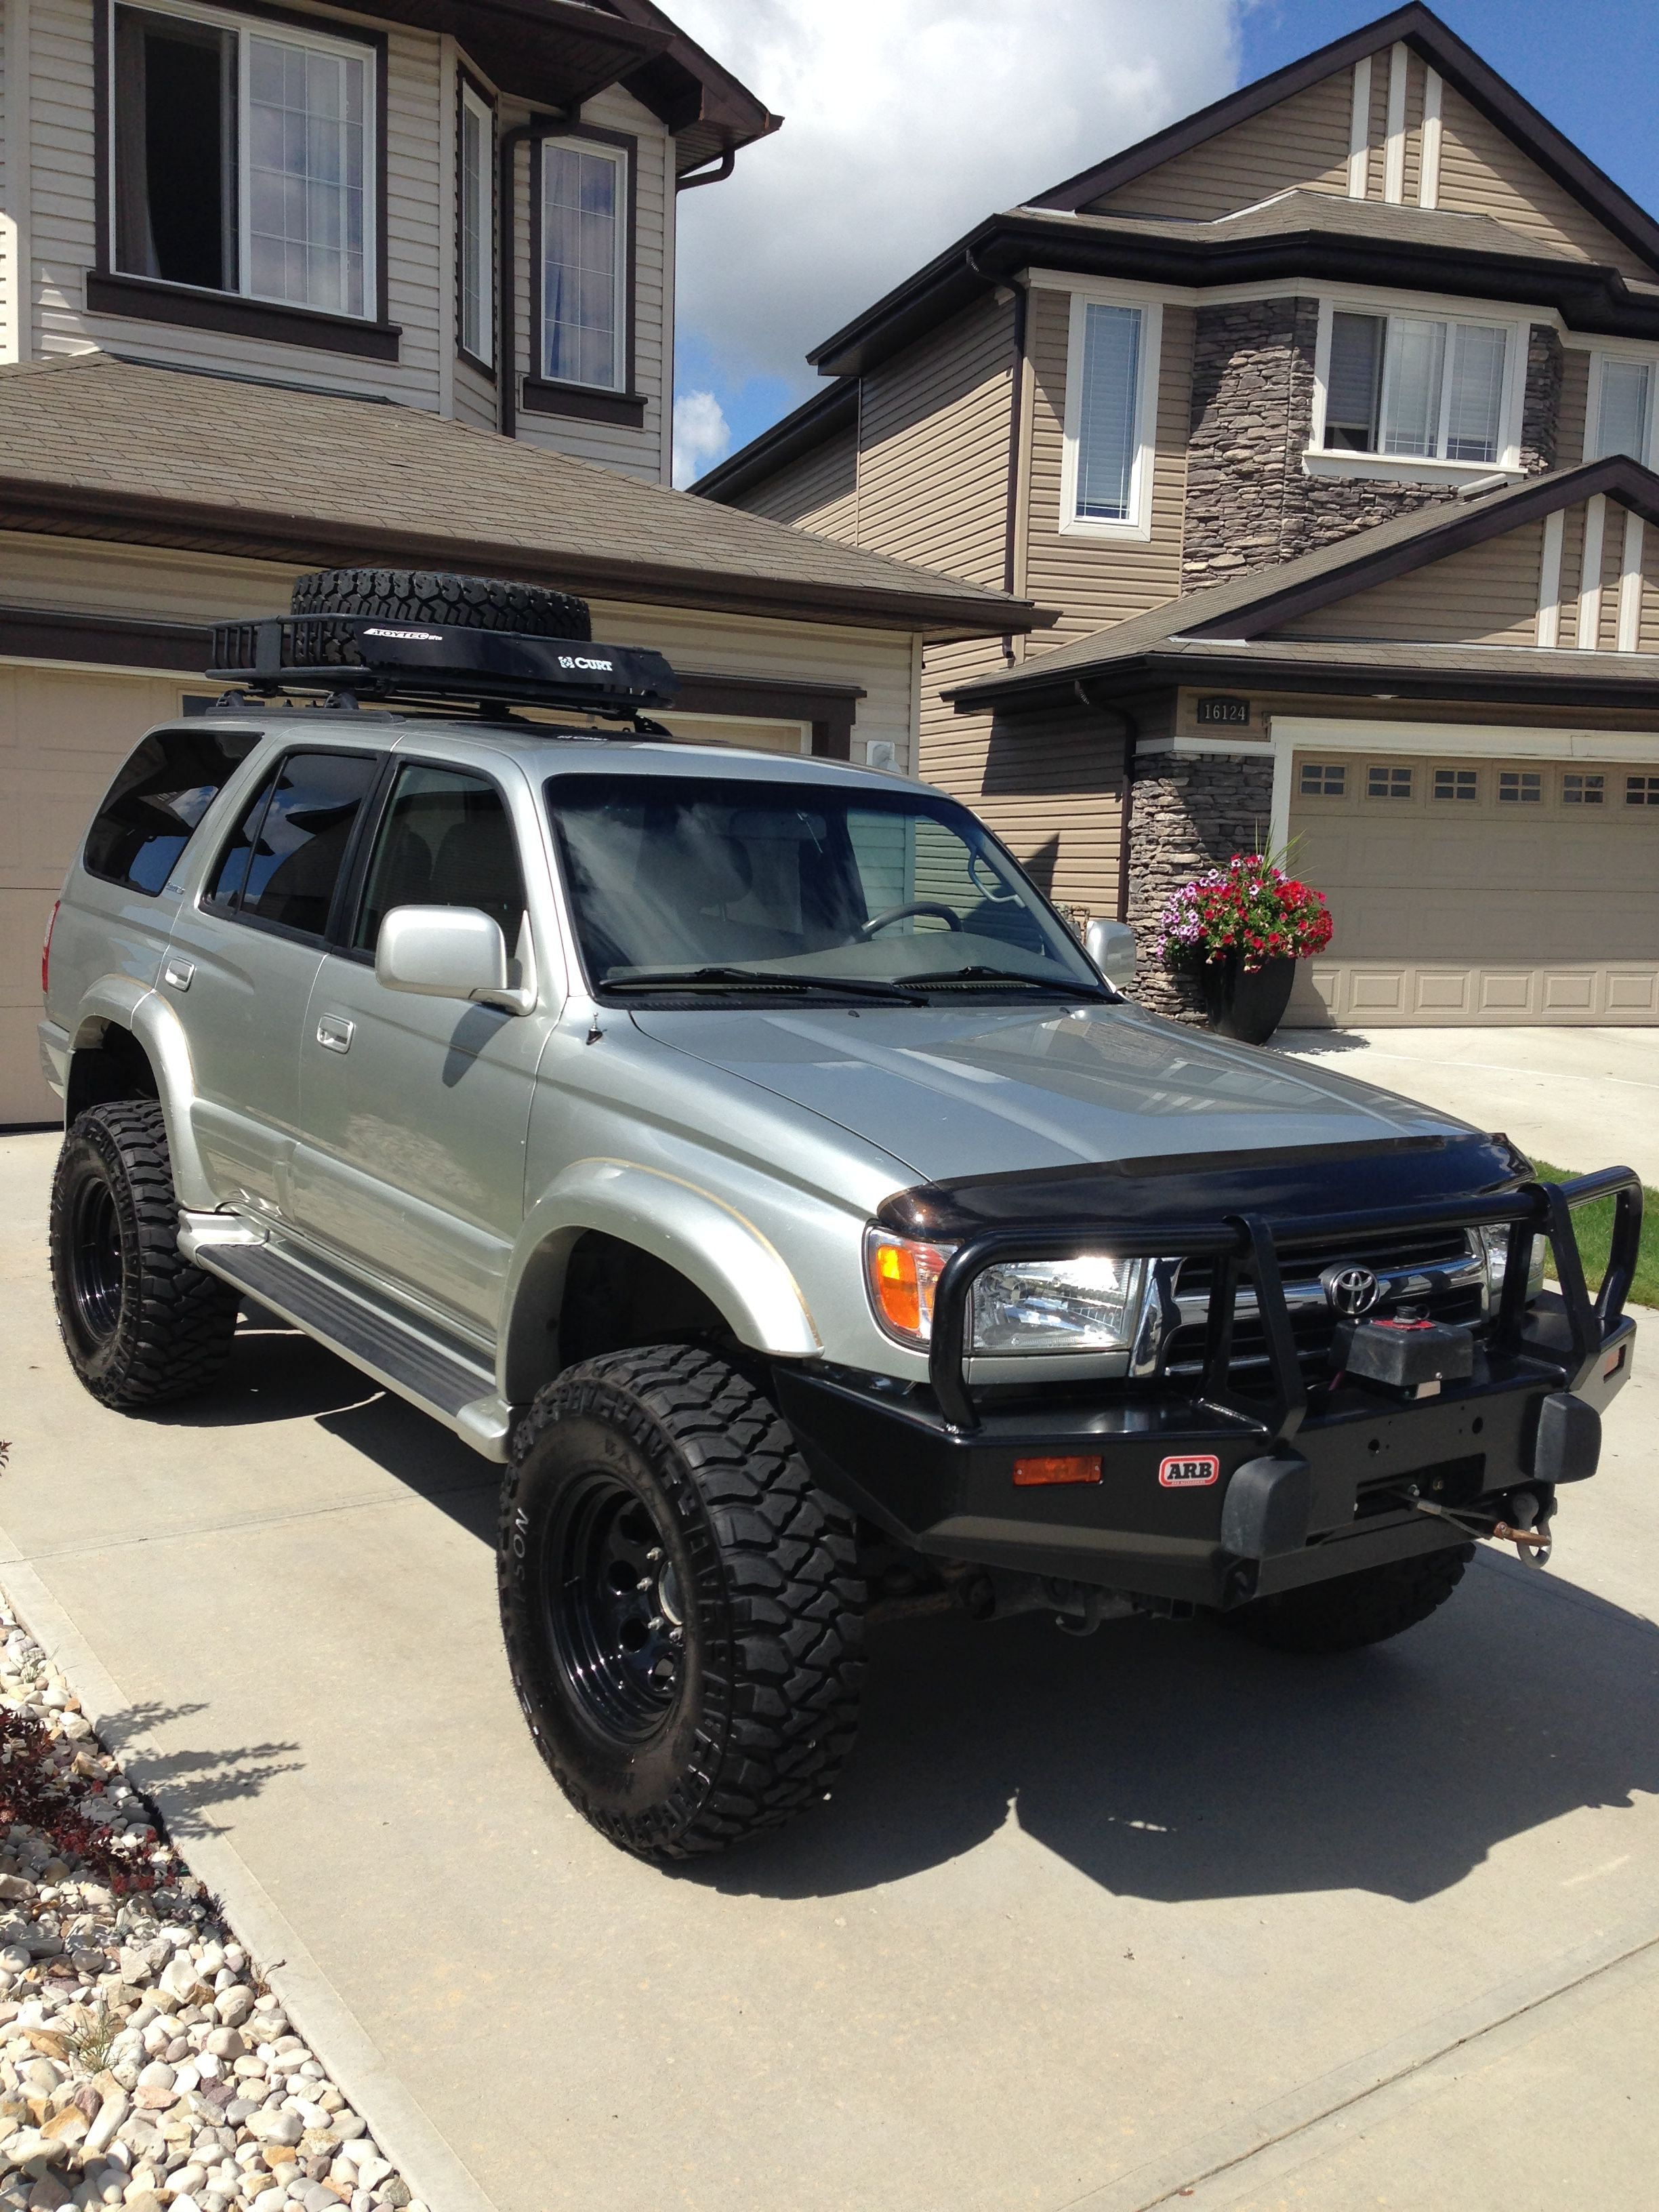 Pin By Cristian Larrondo On 1999 Toyota 4runner 3rd Gen Toyota 4runner 4runner 1999 Toyota 4runner